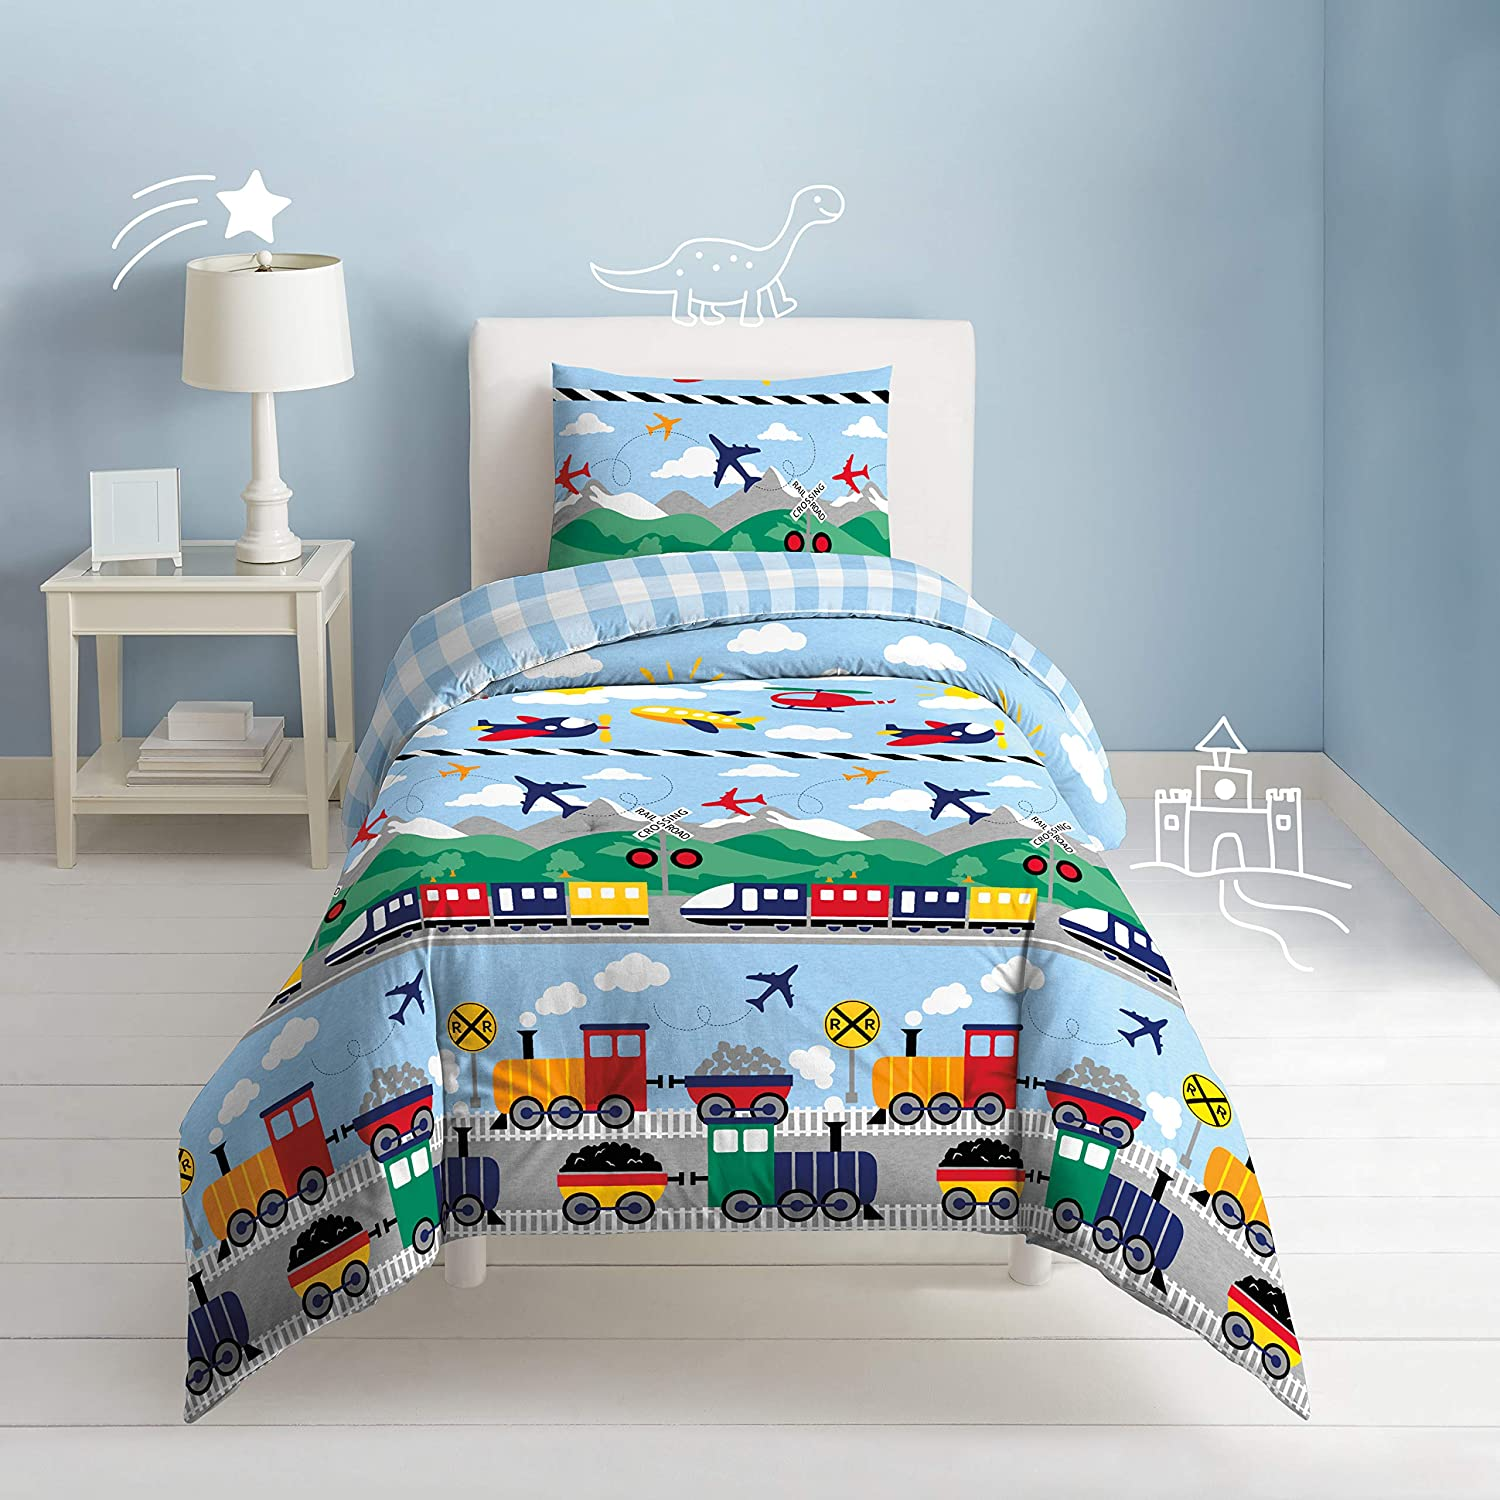 dream FACTORY Kids 3-Piece Easy-Wash Super Soft Cotton Comforter and Pillow Sham Set, Full/Queen, Blue Trains and Planes